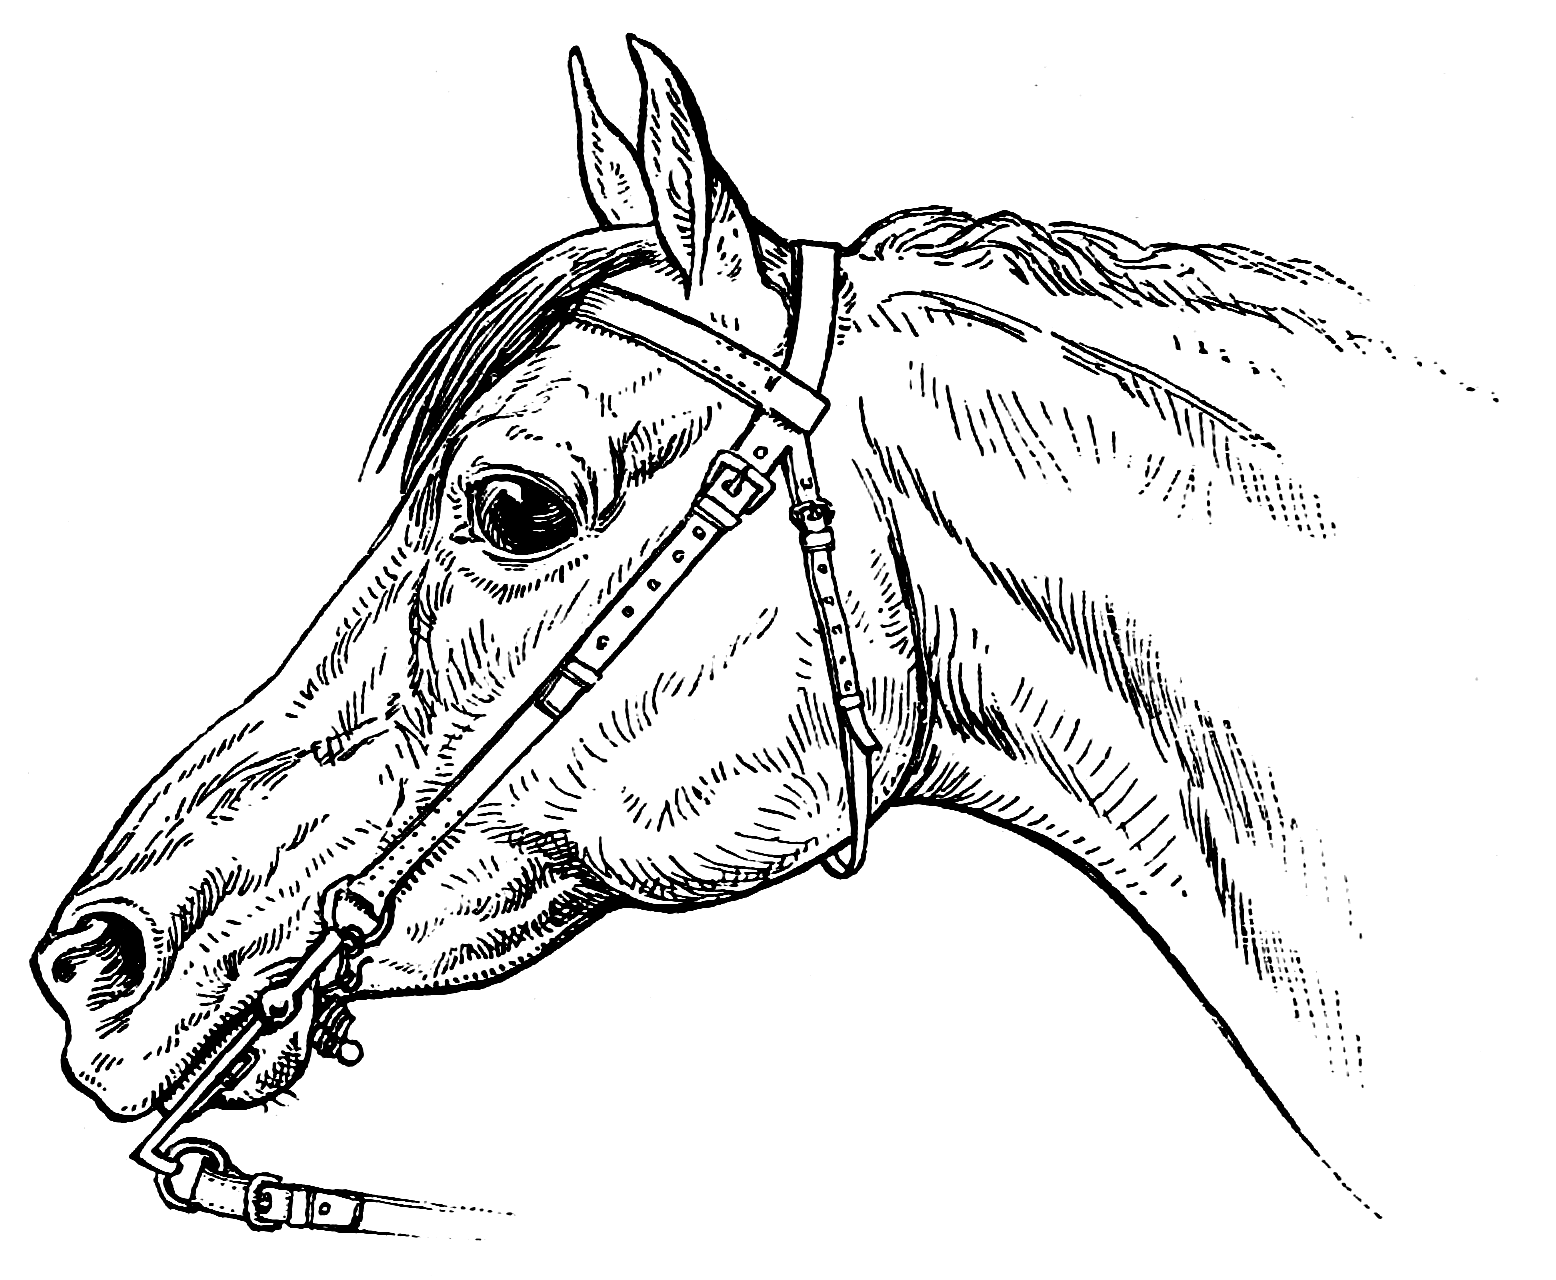 Coloring Pages - Horsemanship For Women | The Equinest